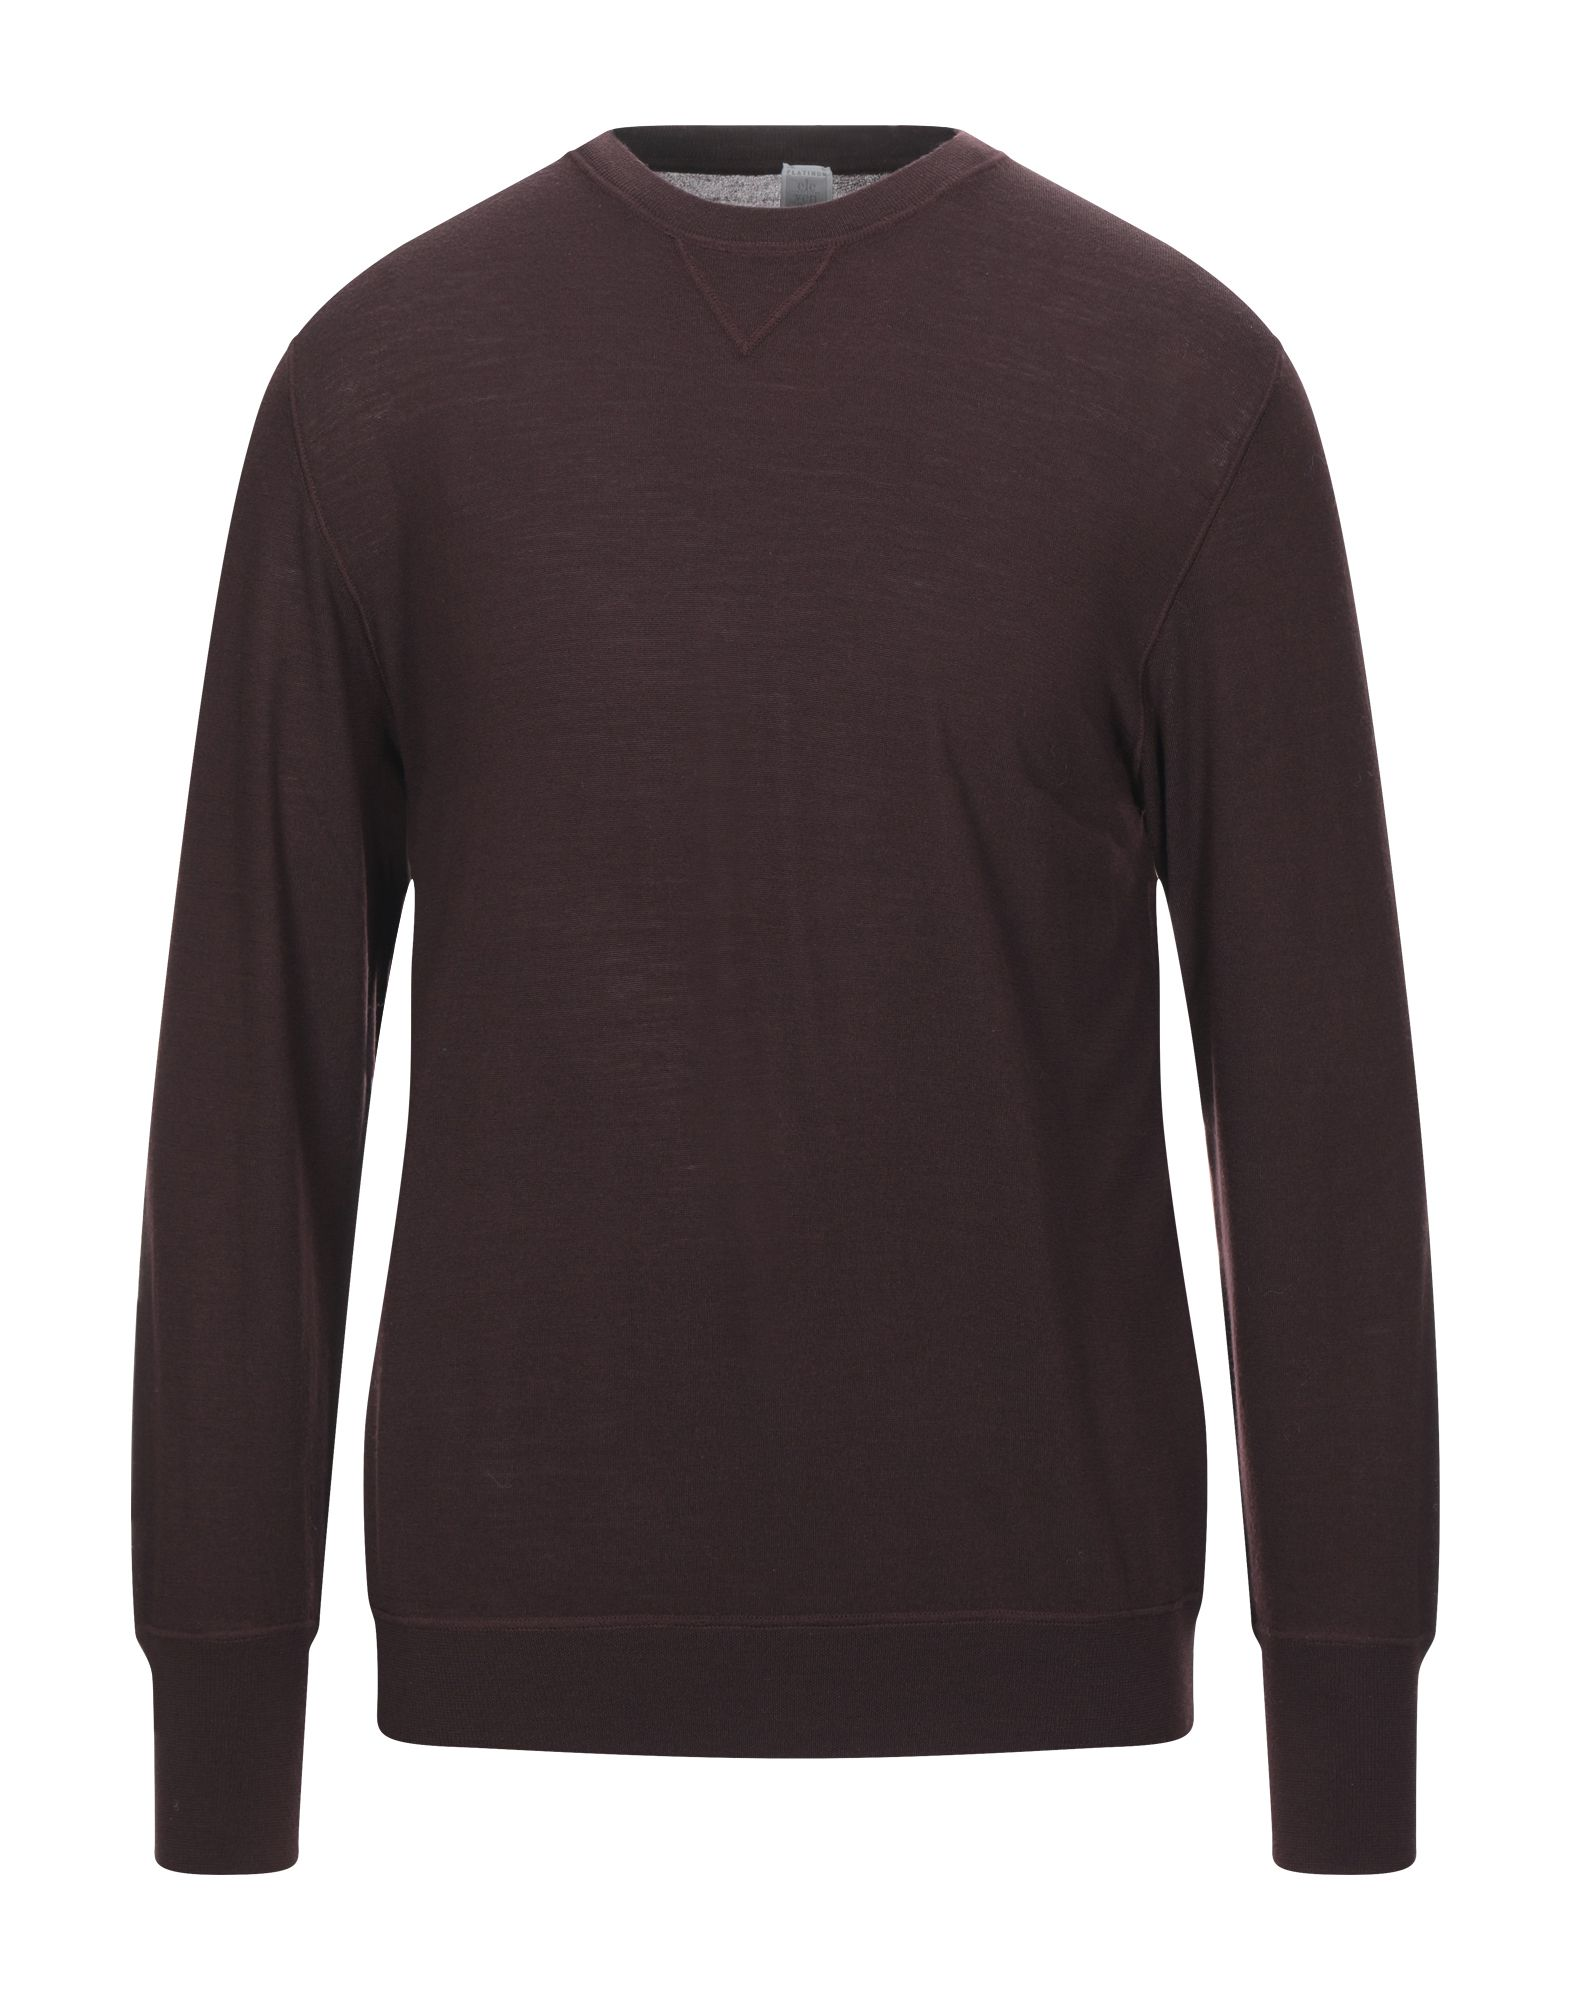 ELEVENTY Sweaters. knitted, no appliqués, basic solid color, round collar, lightweight sweater, long sleeves, no pockets, small sized. 100% Wool